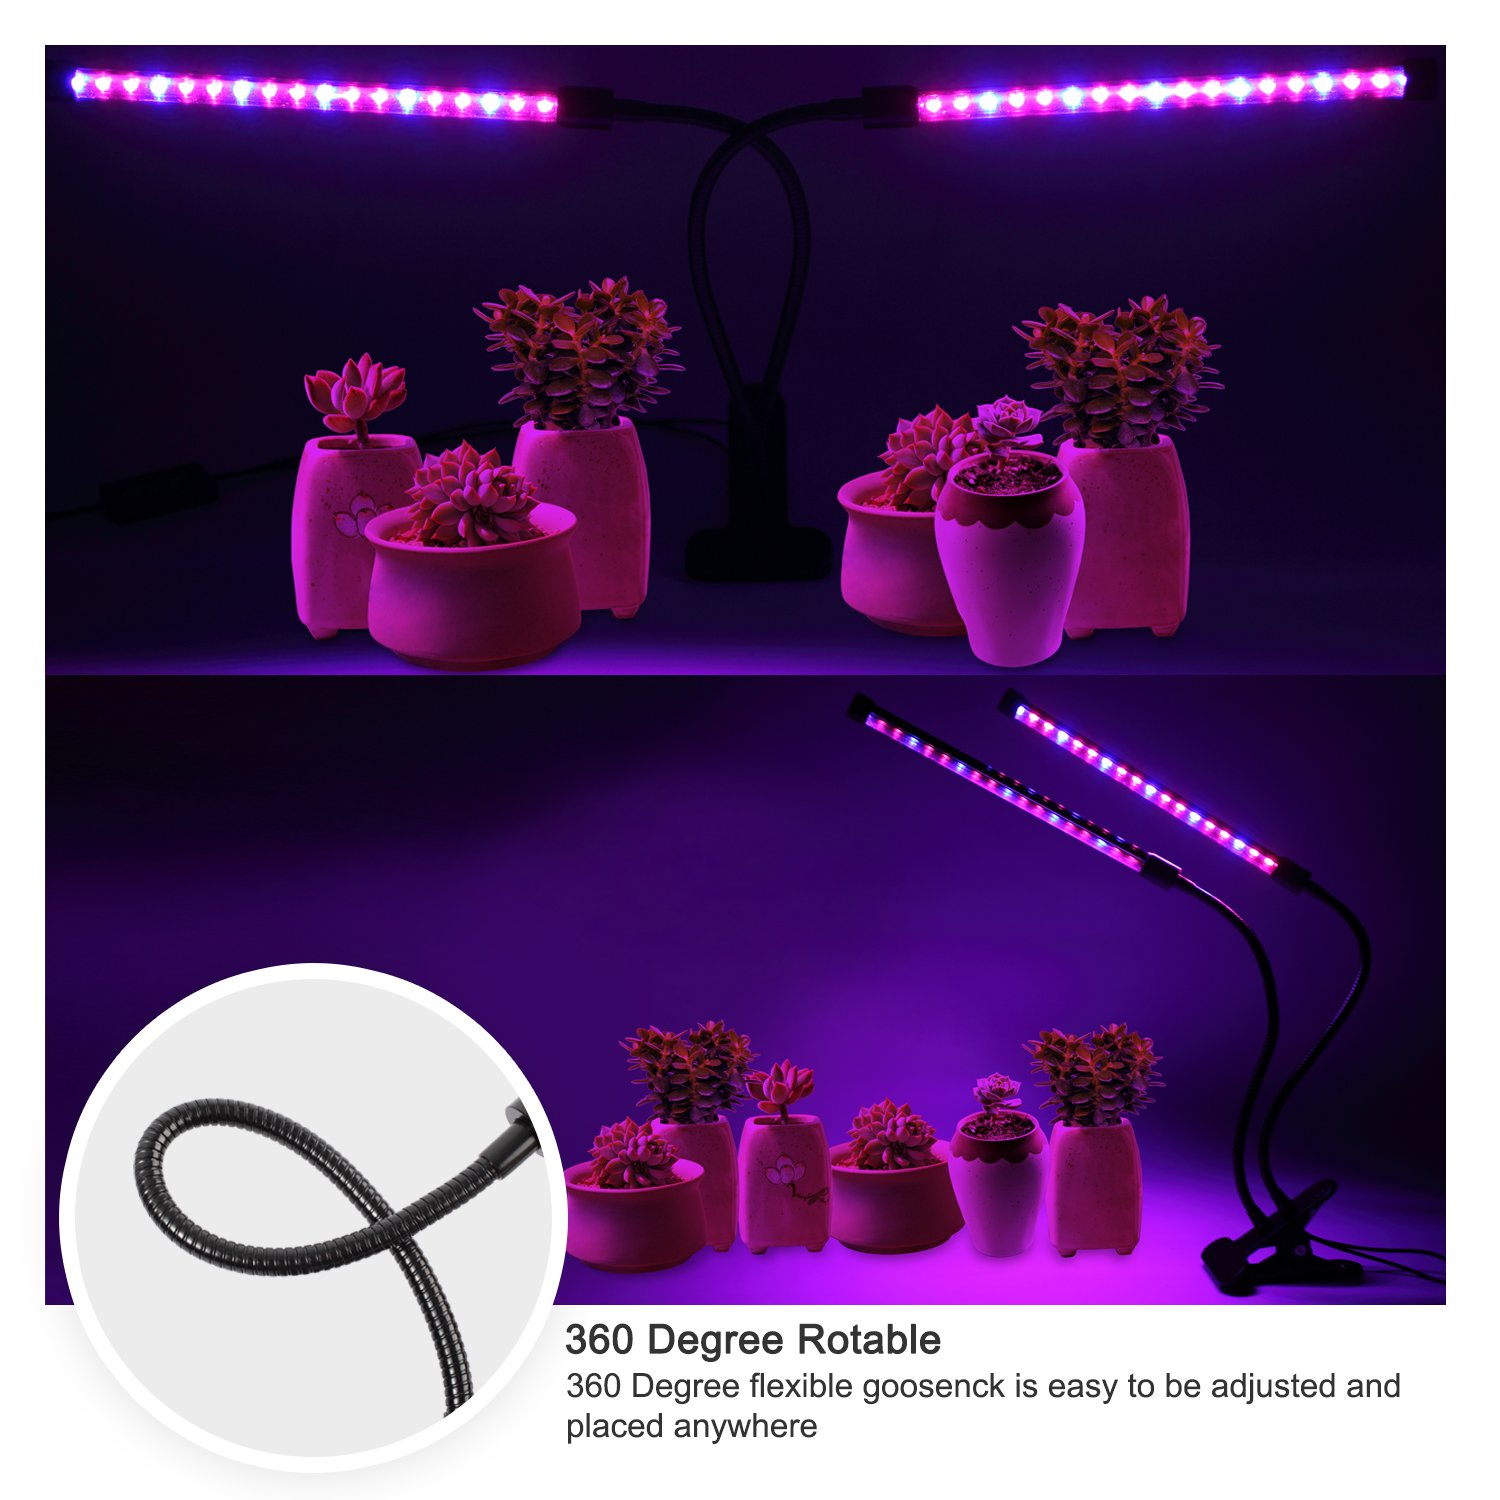 Ankace GrowLight [2018 Upgraded Version] 18W Dual Head Timing 36 LED 5 Dimmable Levels Grow Lights for Indoor Plants with Red/Blue Spectrum, Adjustable Gooseneck, 3/6/12H Timer, 3 Switch Modes by Ankace (Image #3)